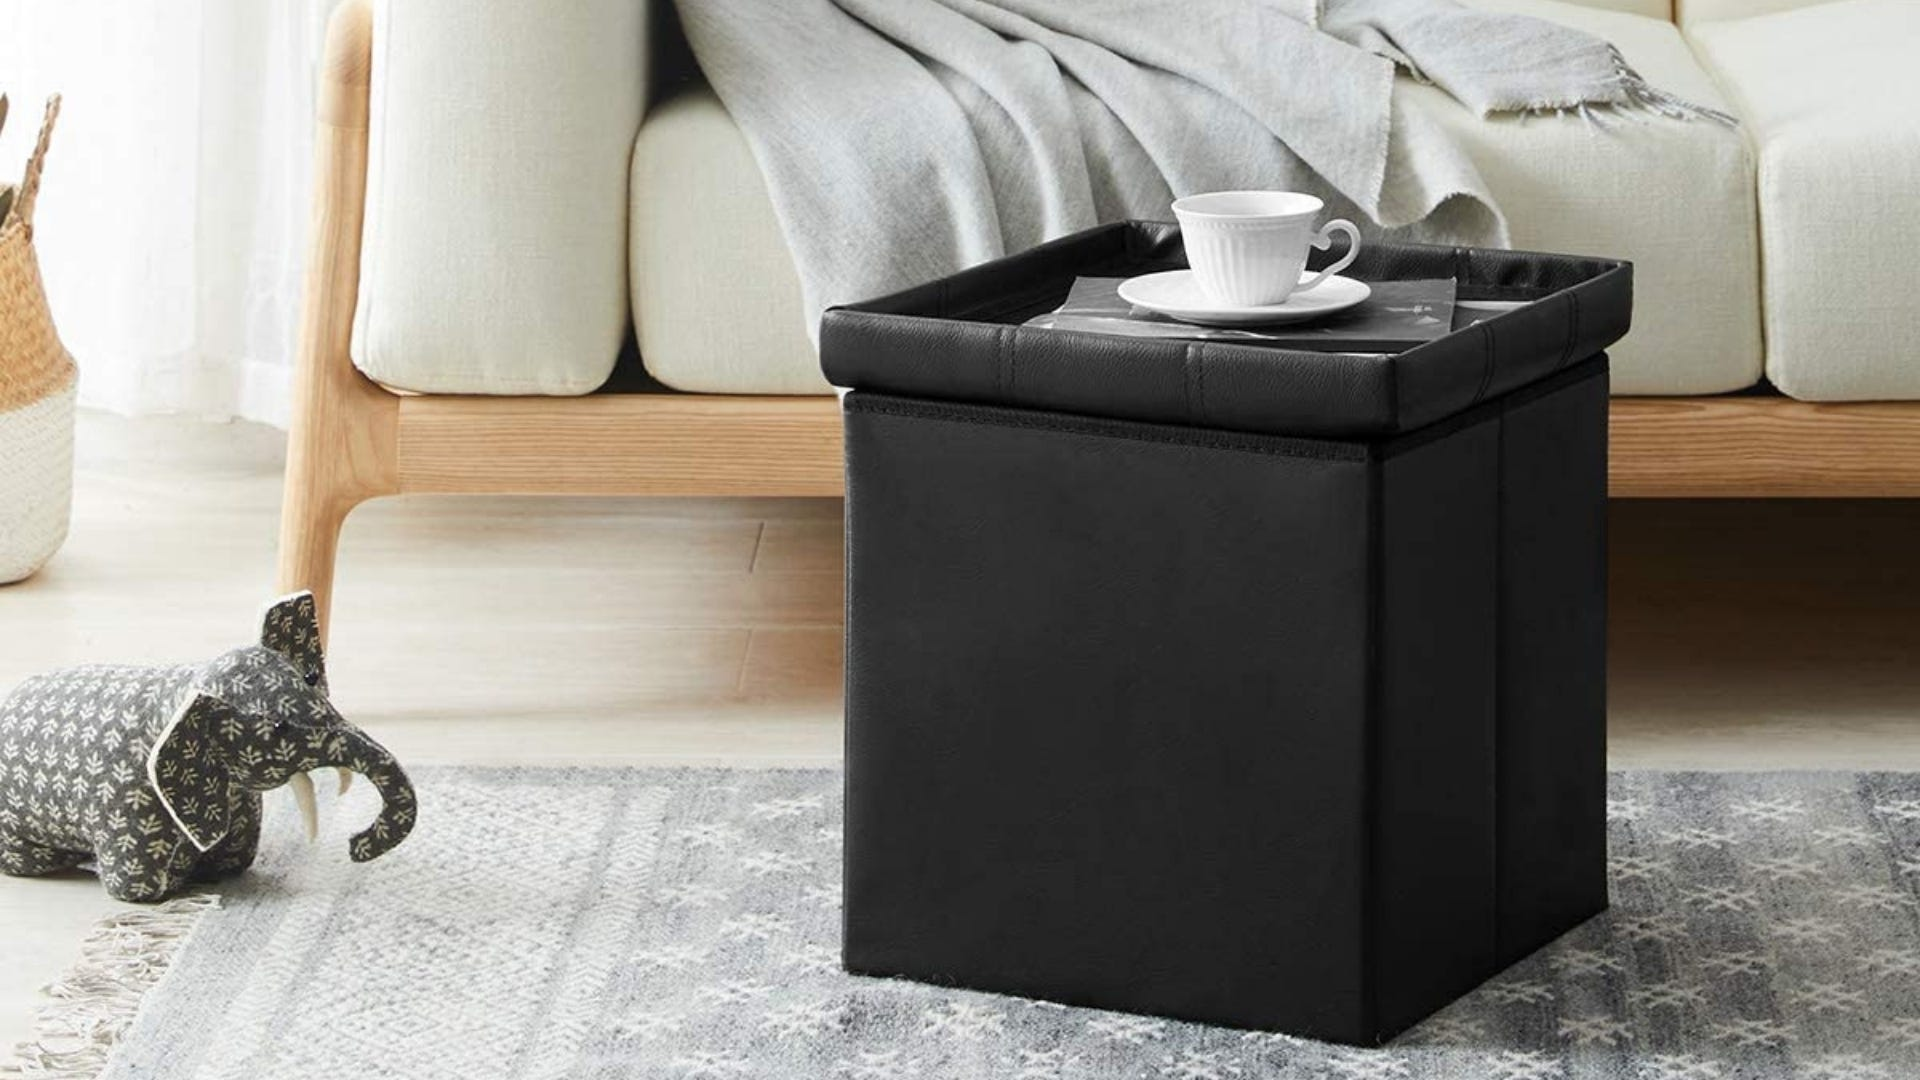 A black storage ottoman with a teacup and saucer on top.